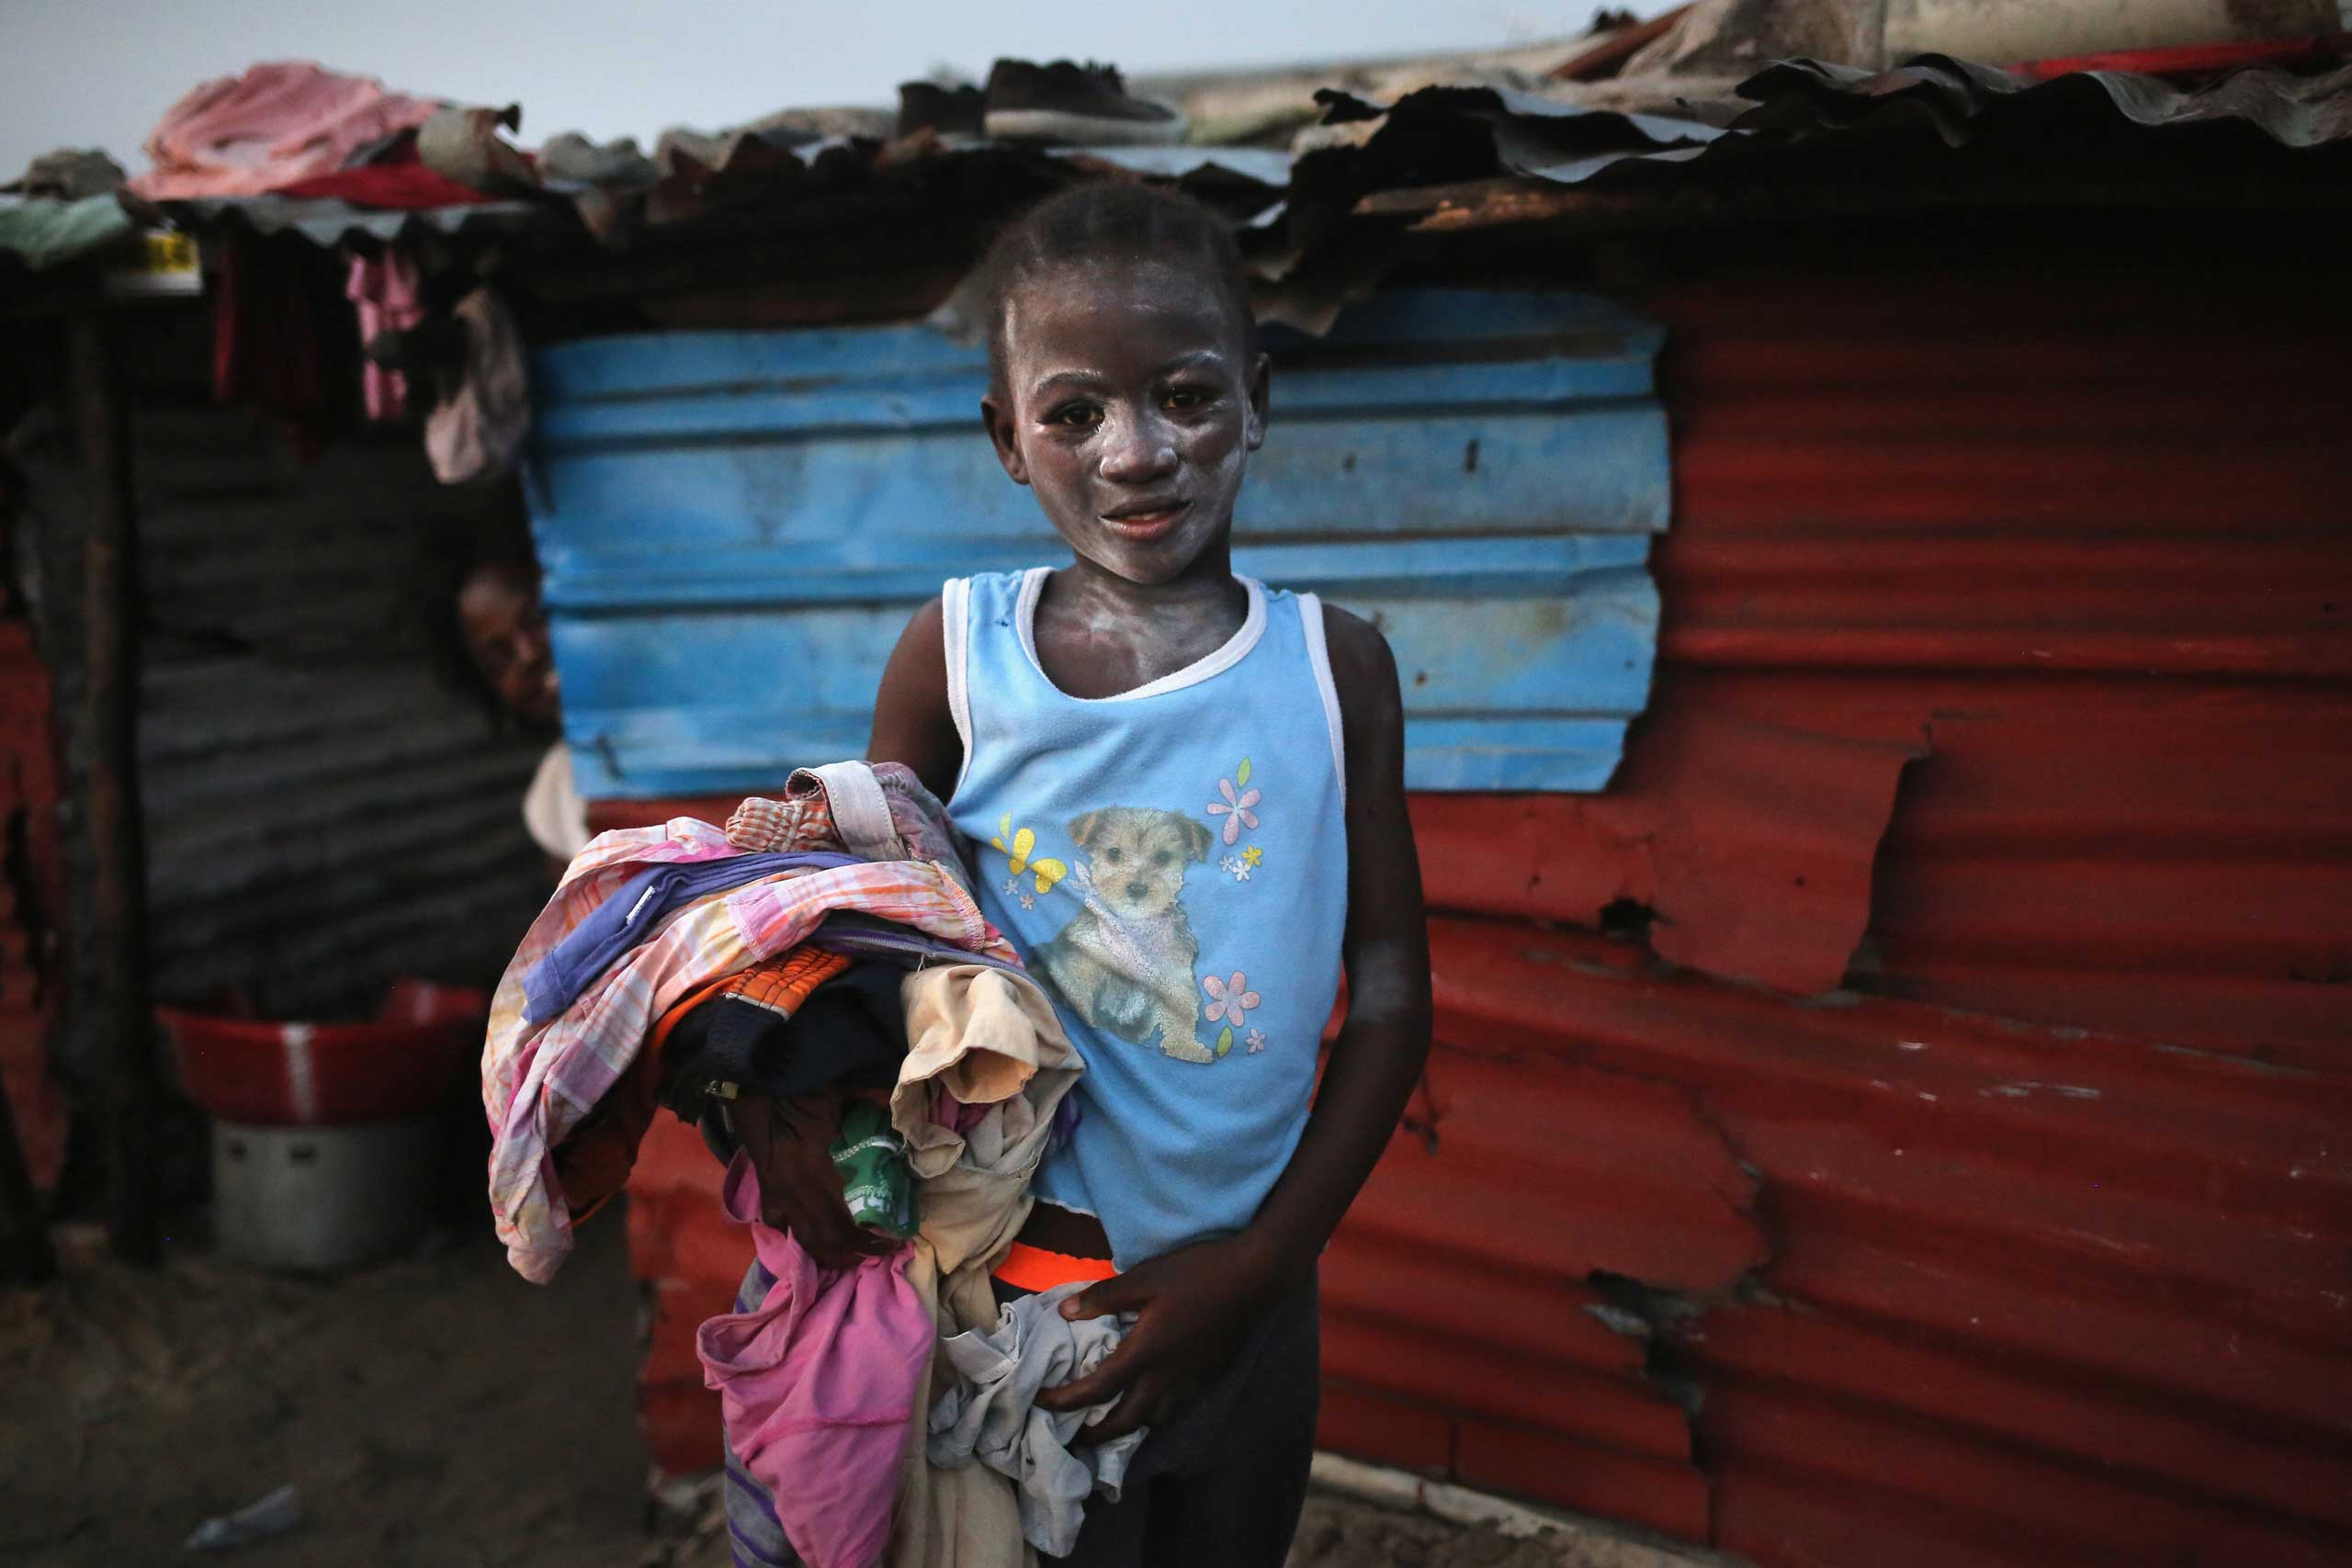 Jan. 31, 2015. A girl collects her family's laundry after drying it on a rooftop in the West Point township in Monrovia, Liberia. Life has slowly begun to return to normal for many Liberians, as the government says there are currently fewer than 10 cases of Ebola in the country.